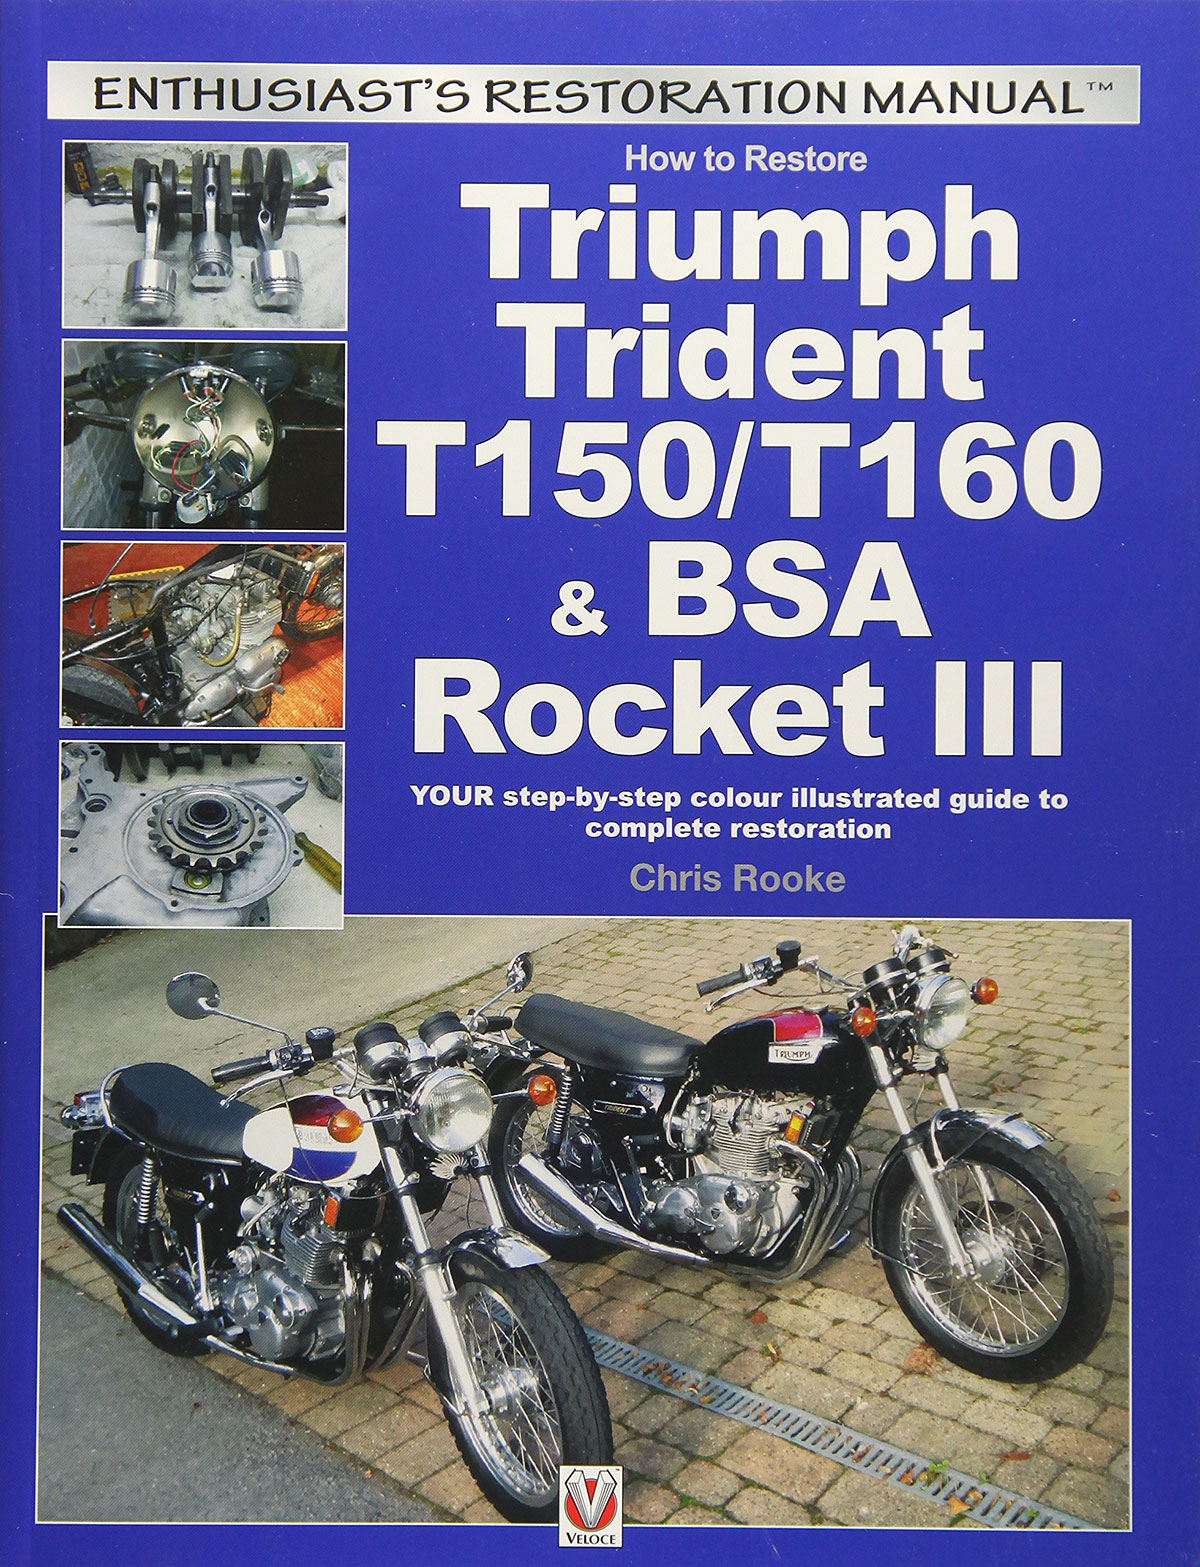 Triumph Trident and BSA Rocket III Restoration Manual front cover